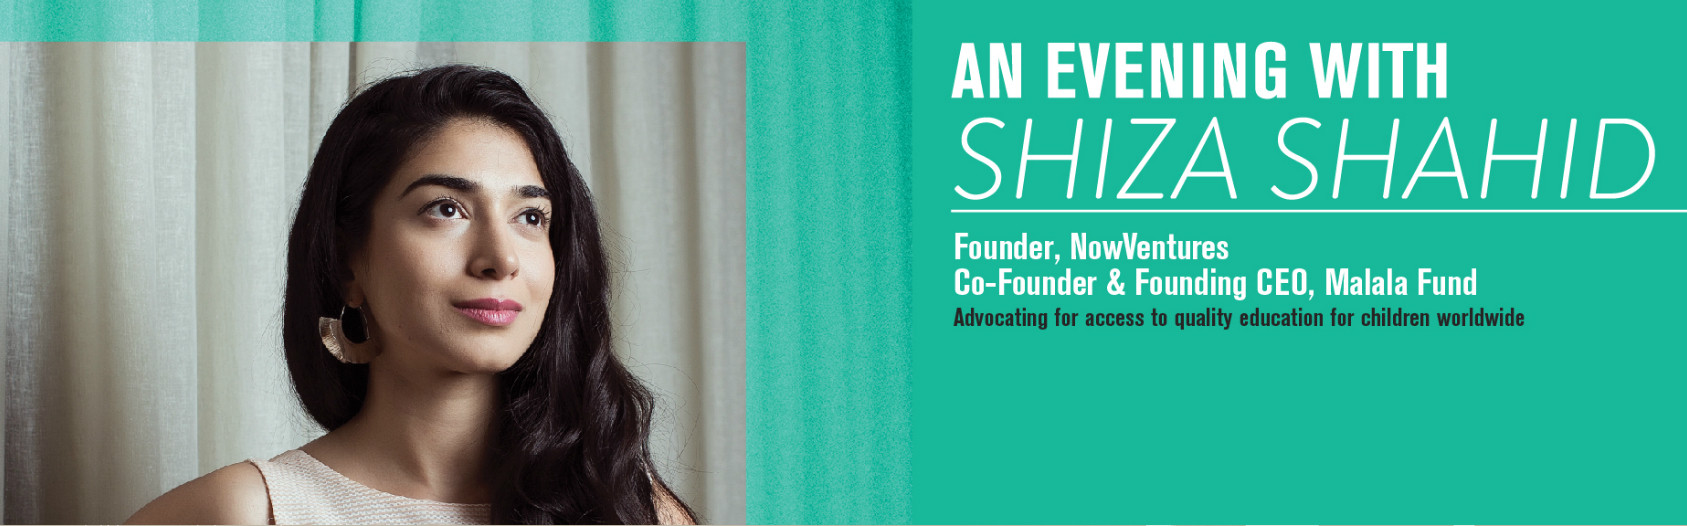 An Evening With: Shiza Shahid banner